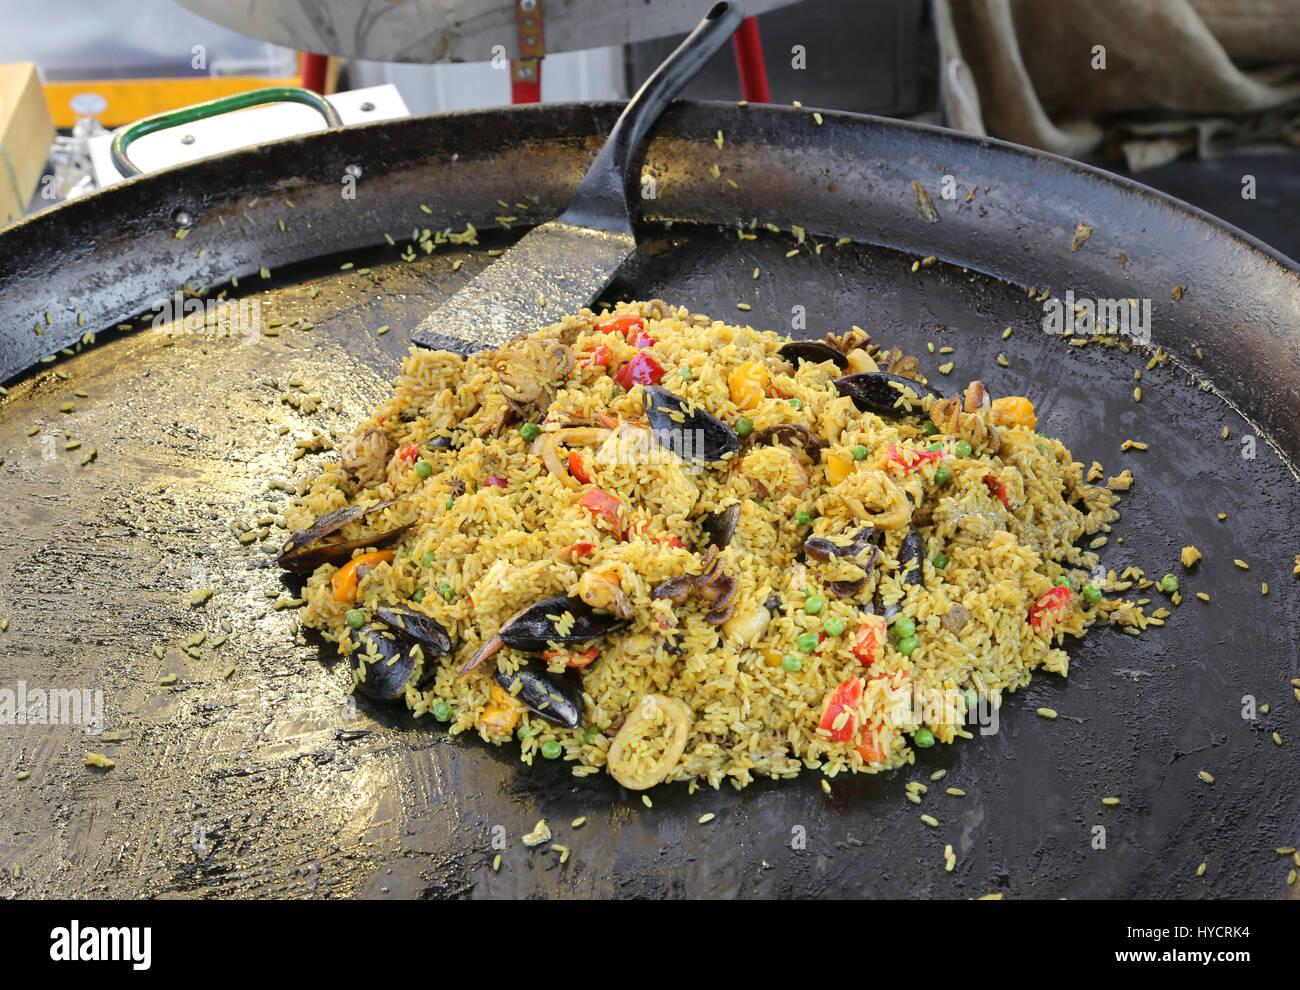 large pan of Spanish restaurant with tasty paella with rice and mussels and seafood Stock Photo